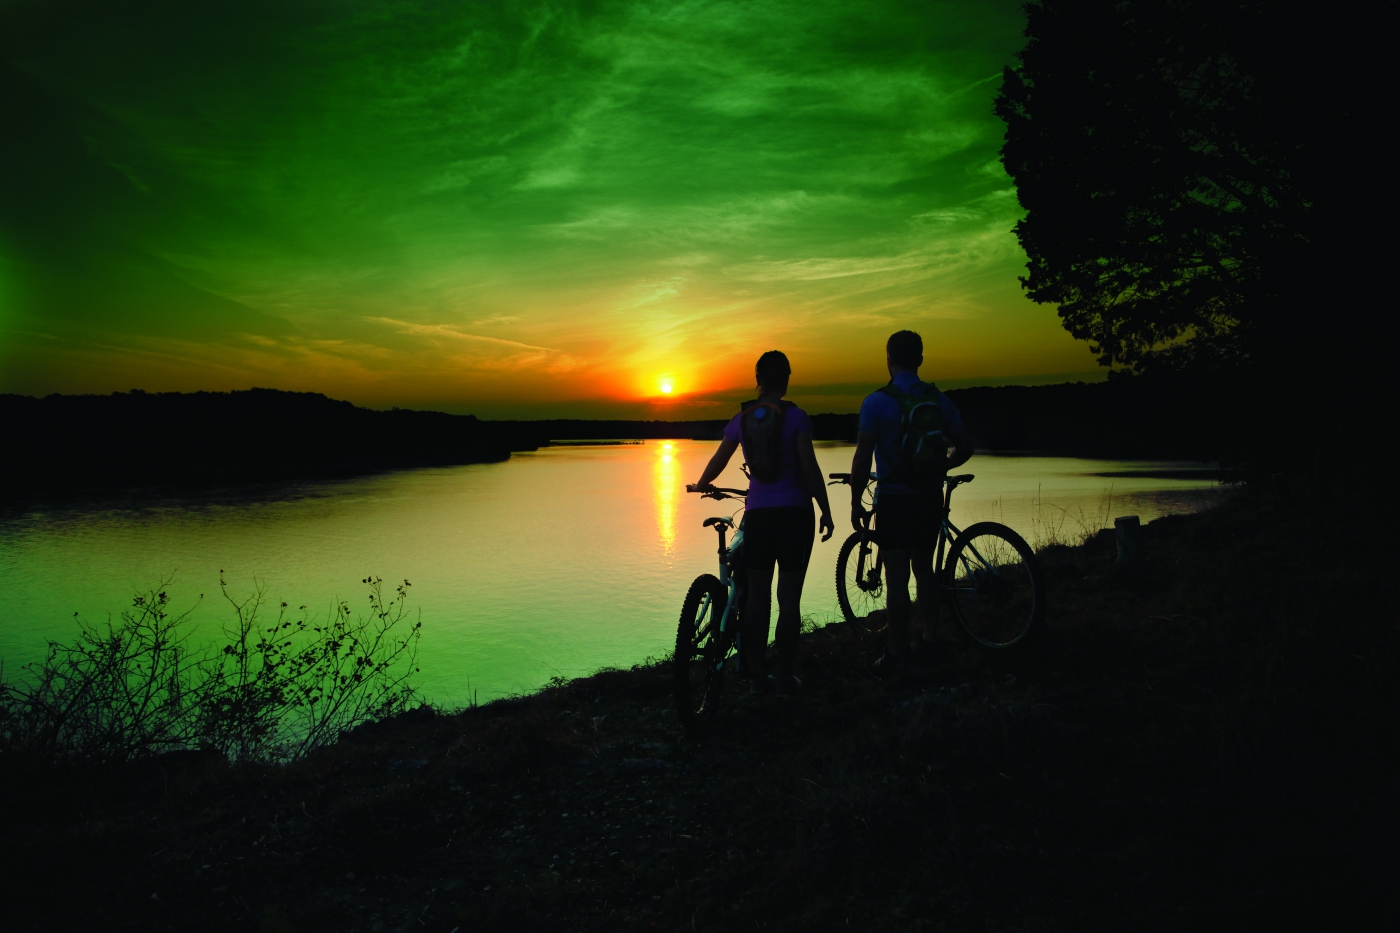 Missouri is lauded for its great outdoor trails, including those found within the vast State Parks system.